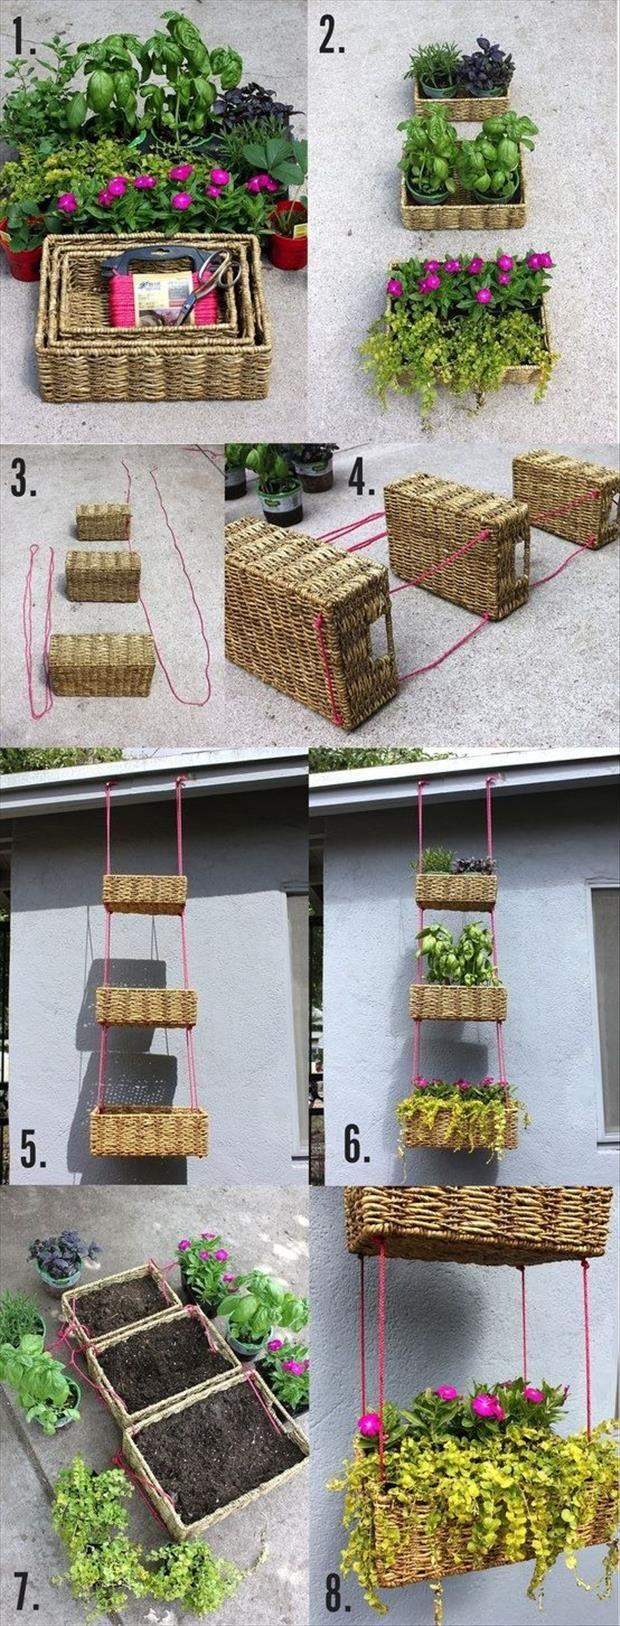 outdoor ideas (2)